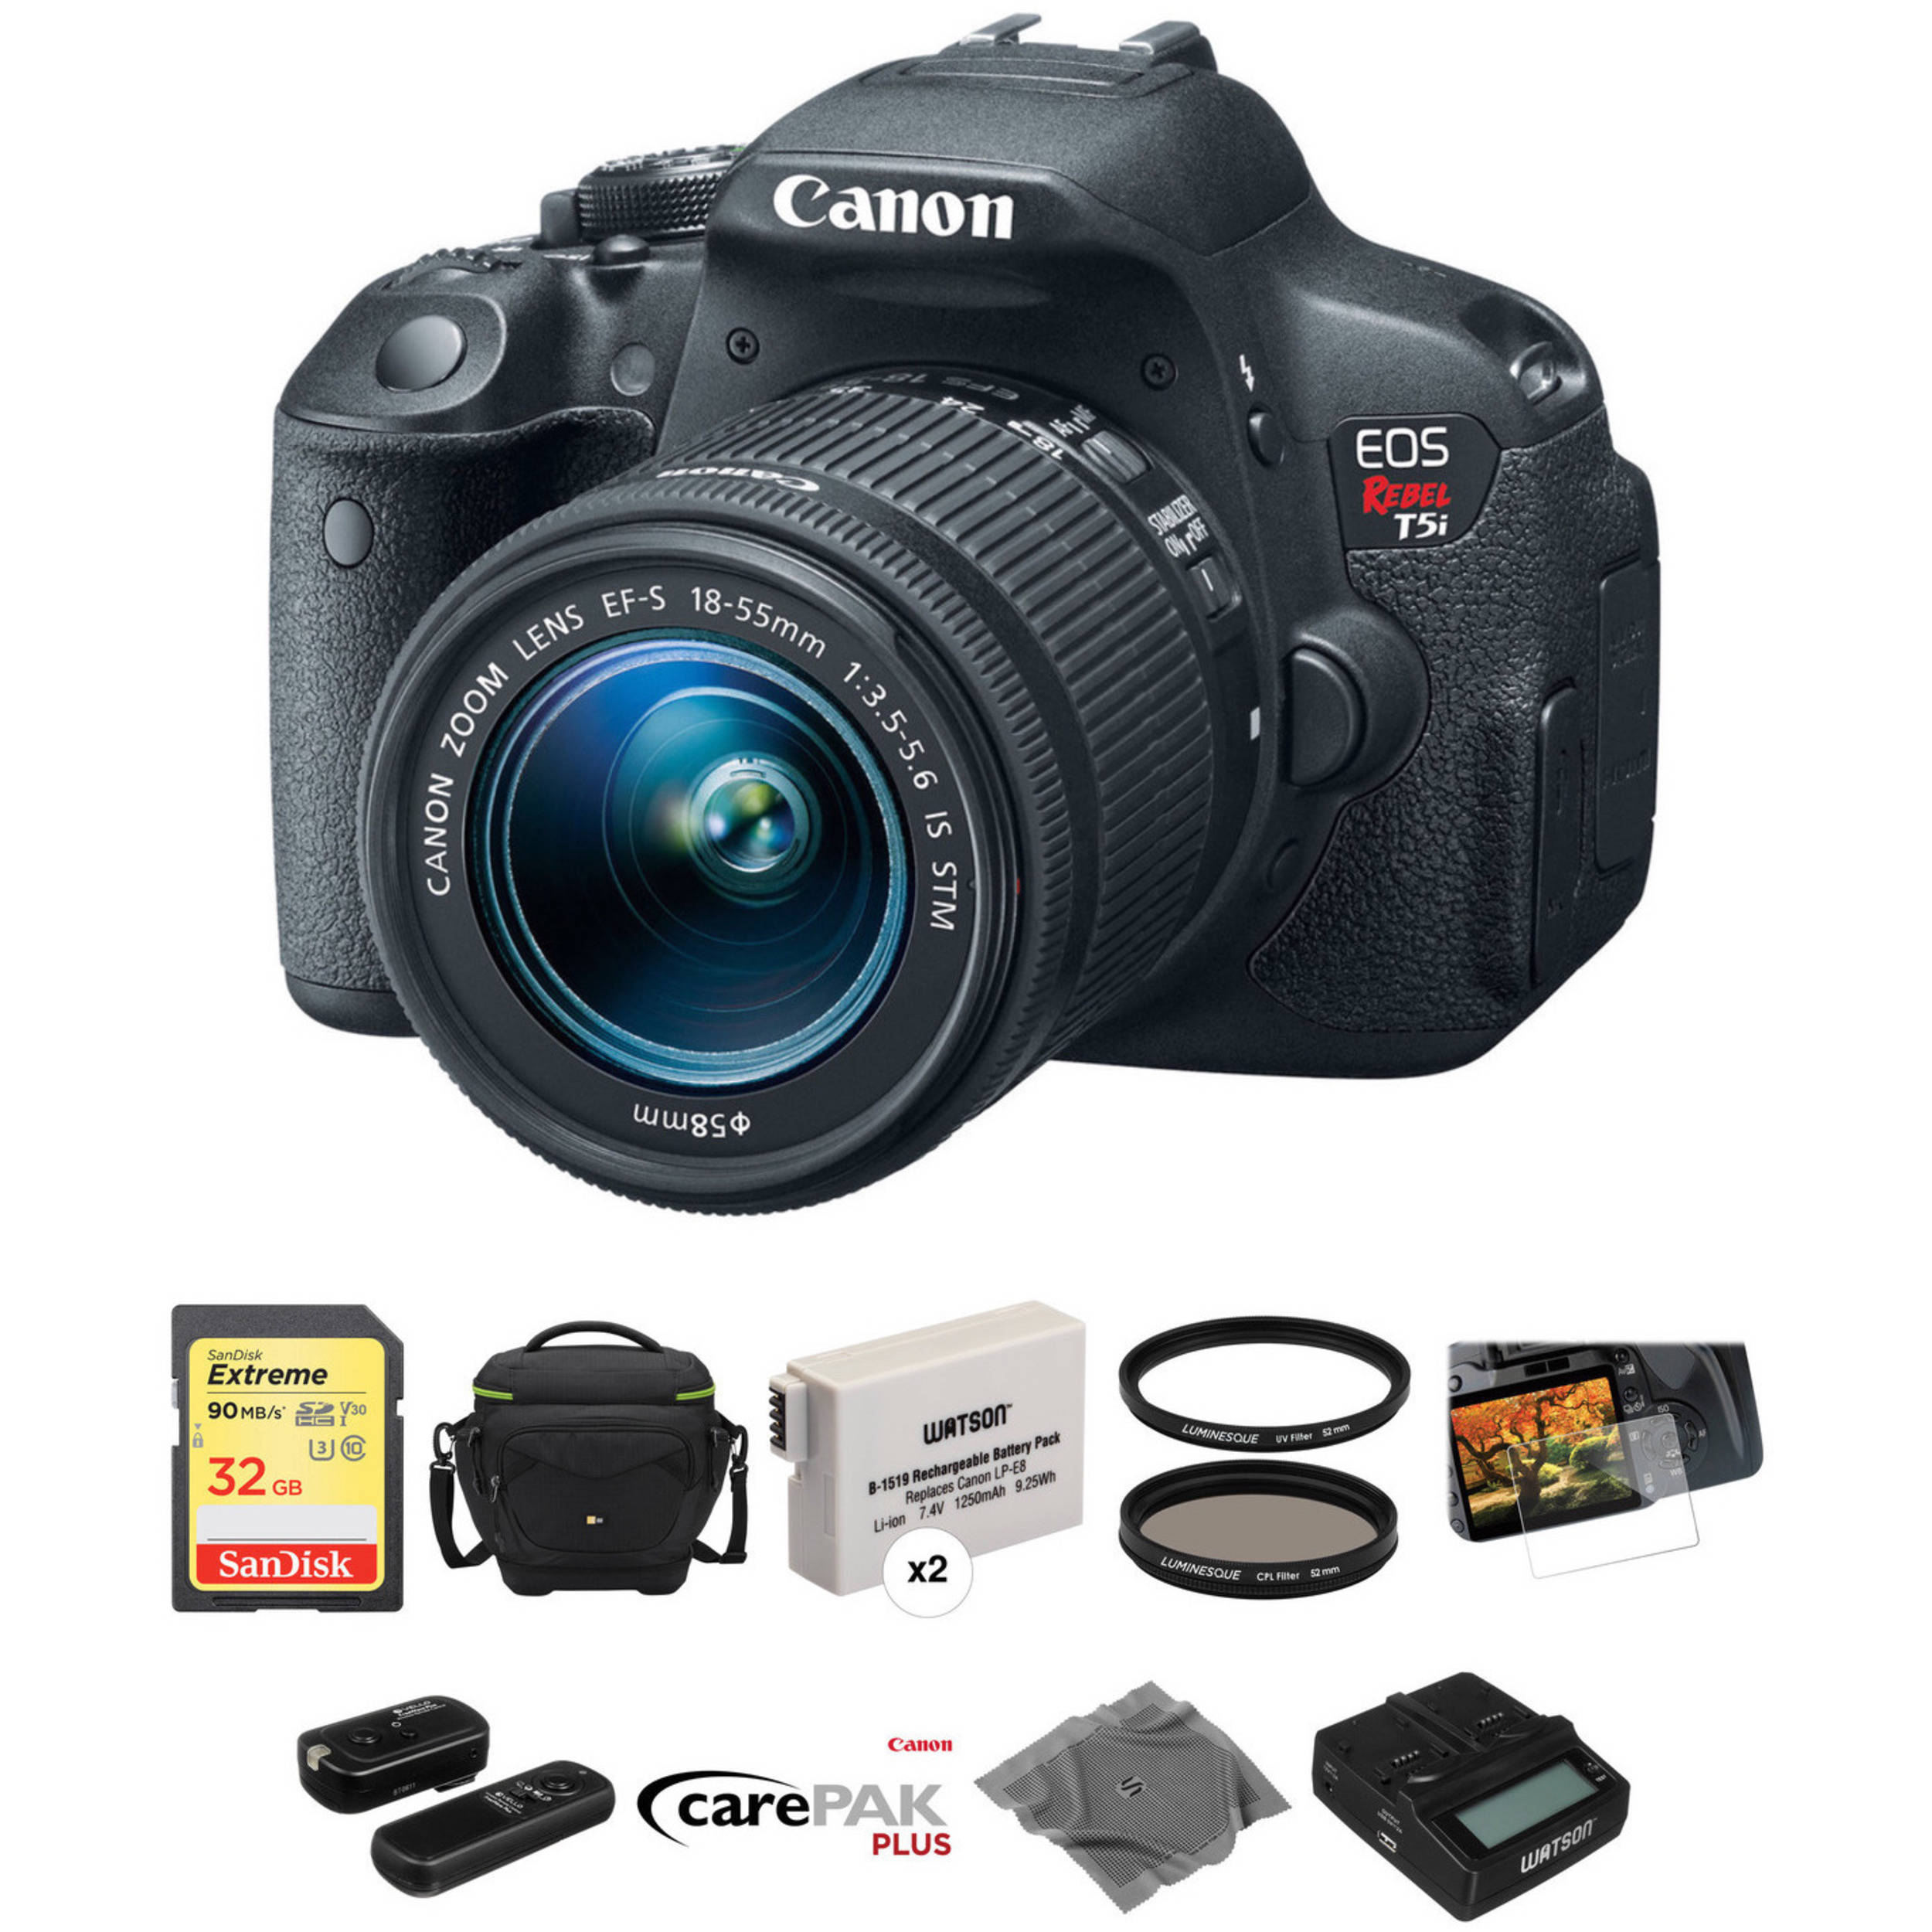 Canon Eos Rebel T5i Dslr Camera With 18 55mm Lens Deluxe Kit